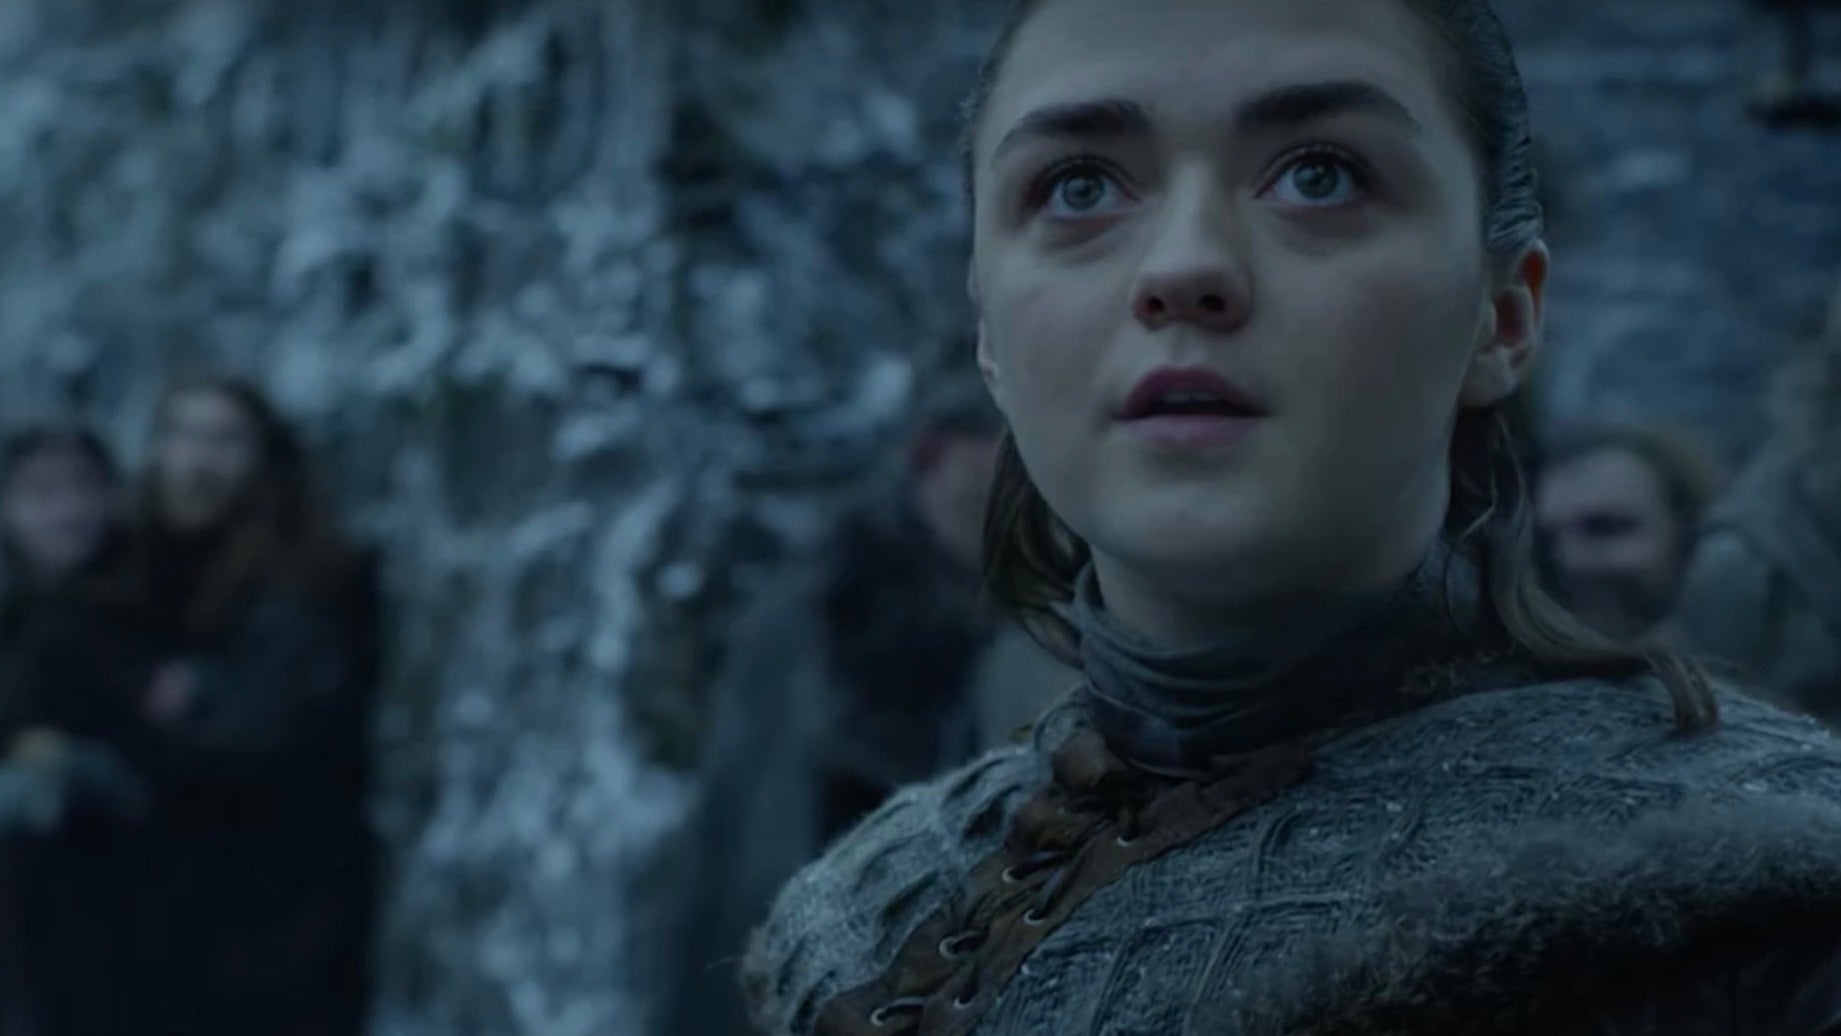 George R.R. Martin Turned Down A Chance To Appear InGame Of Thrones Season 8